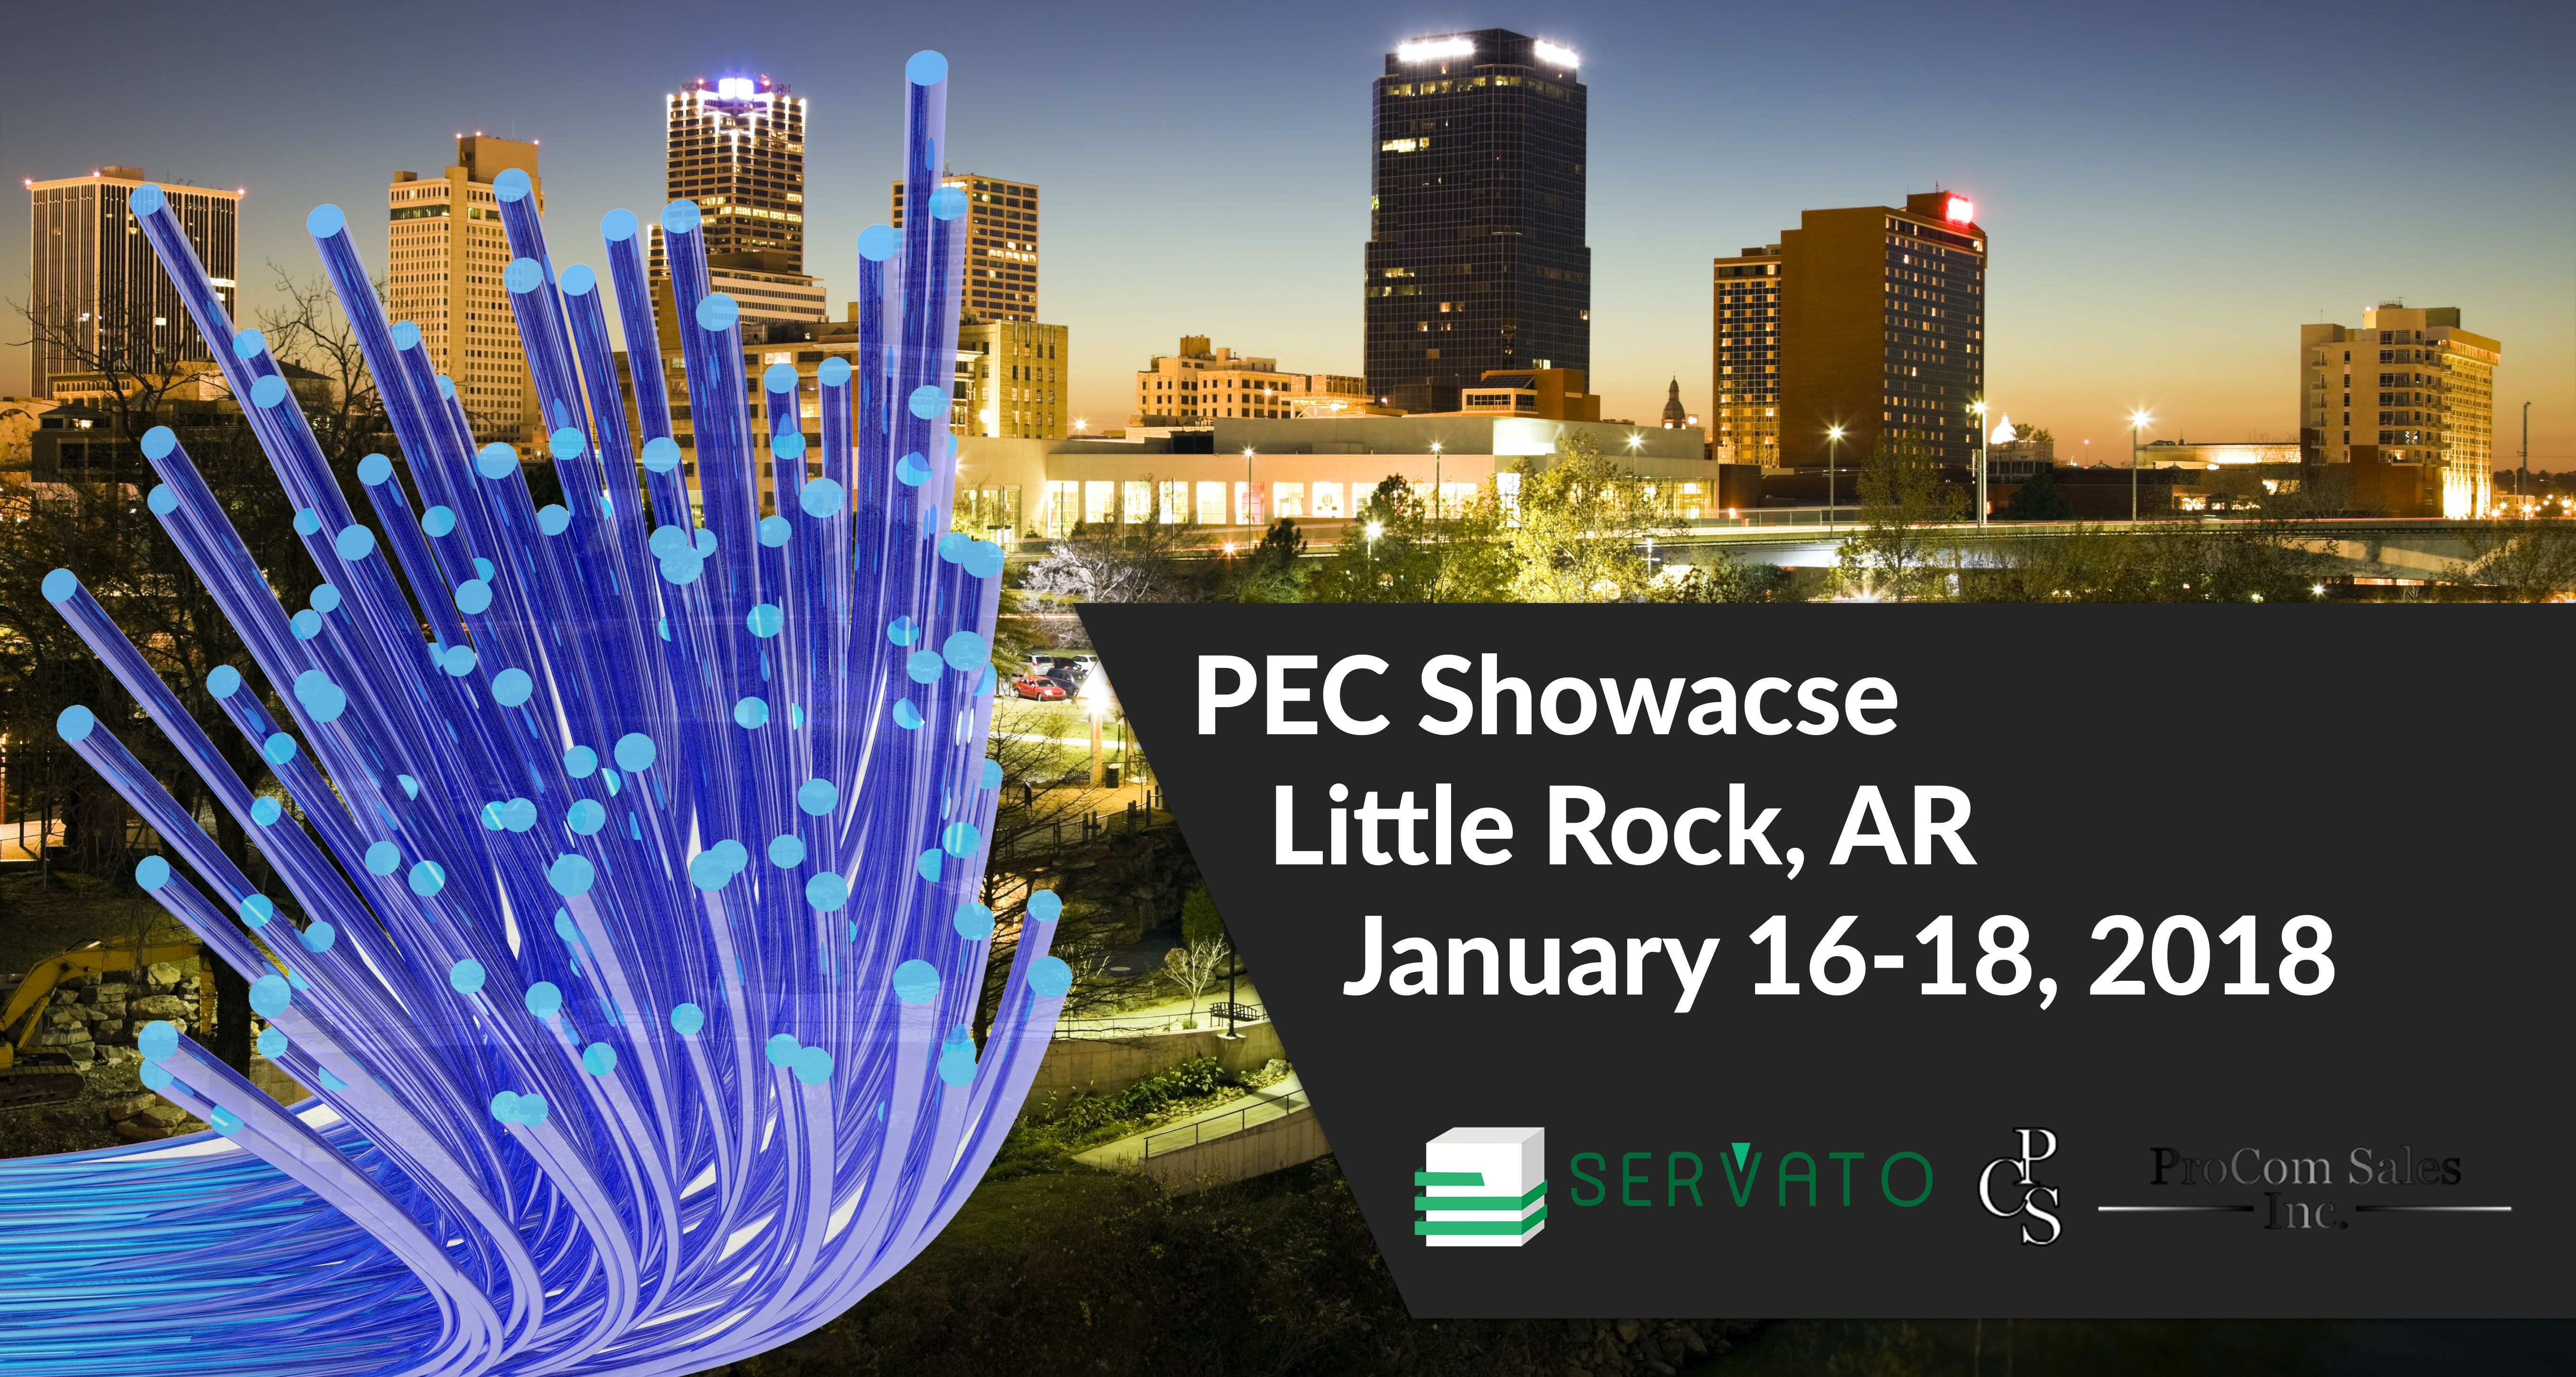 Here at the PEC Showcase in Little Rock!